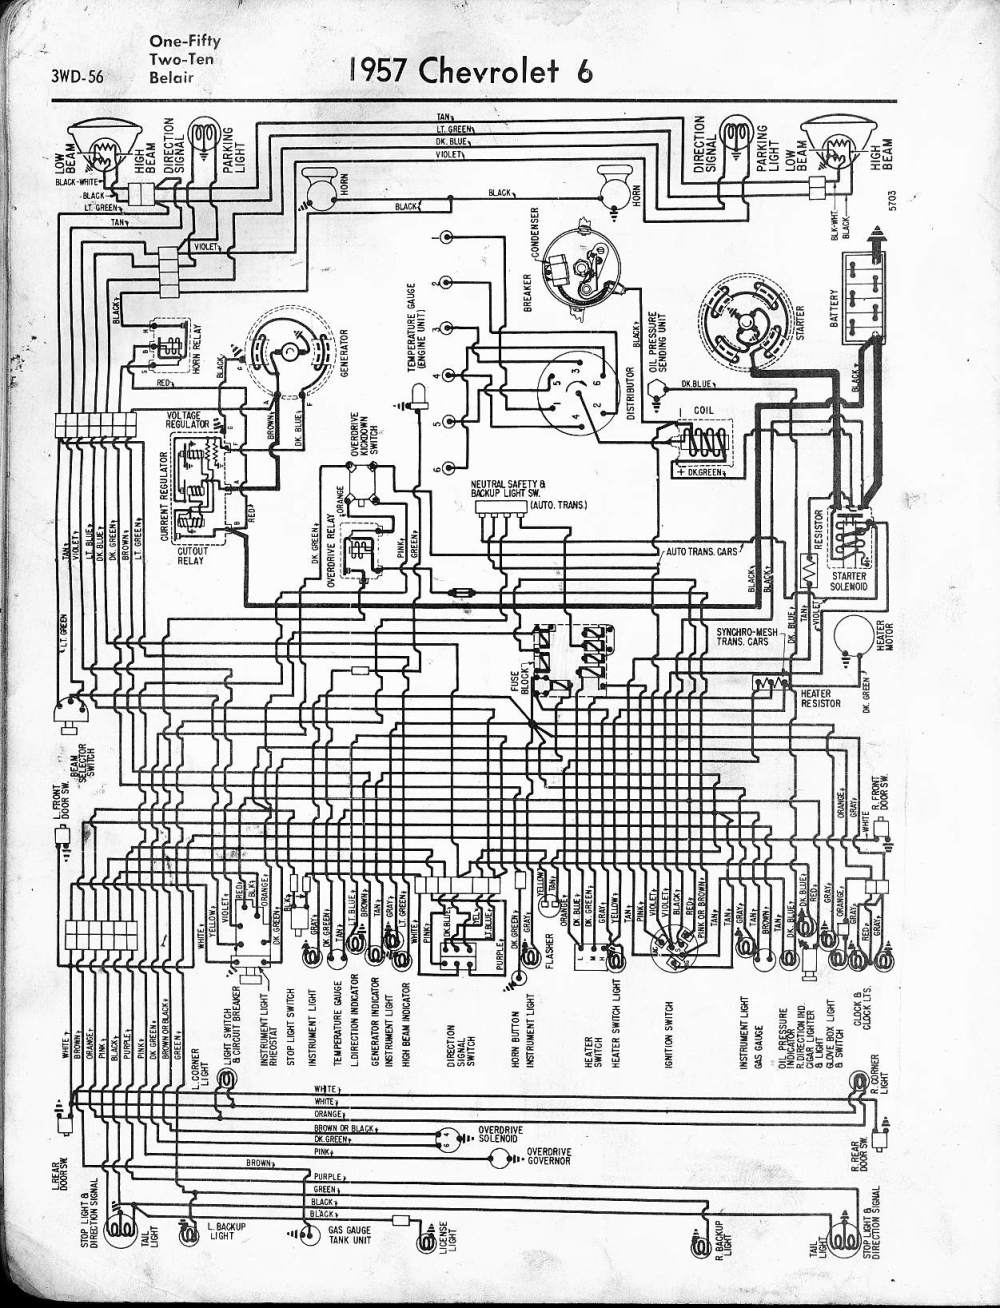 medium resolution of 1957 chevy bel air wiring diagram wiring diagram third level 1957 corvette wiring diagram 1957 bel air wiring diagram schematic